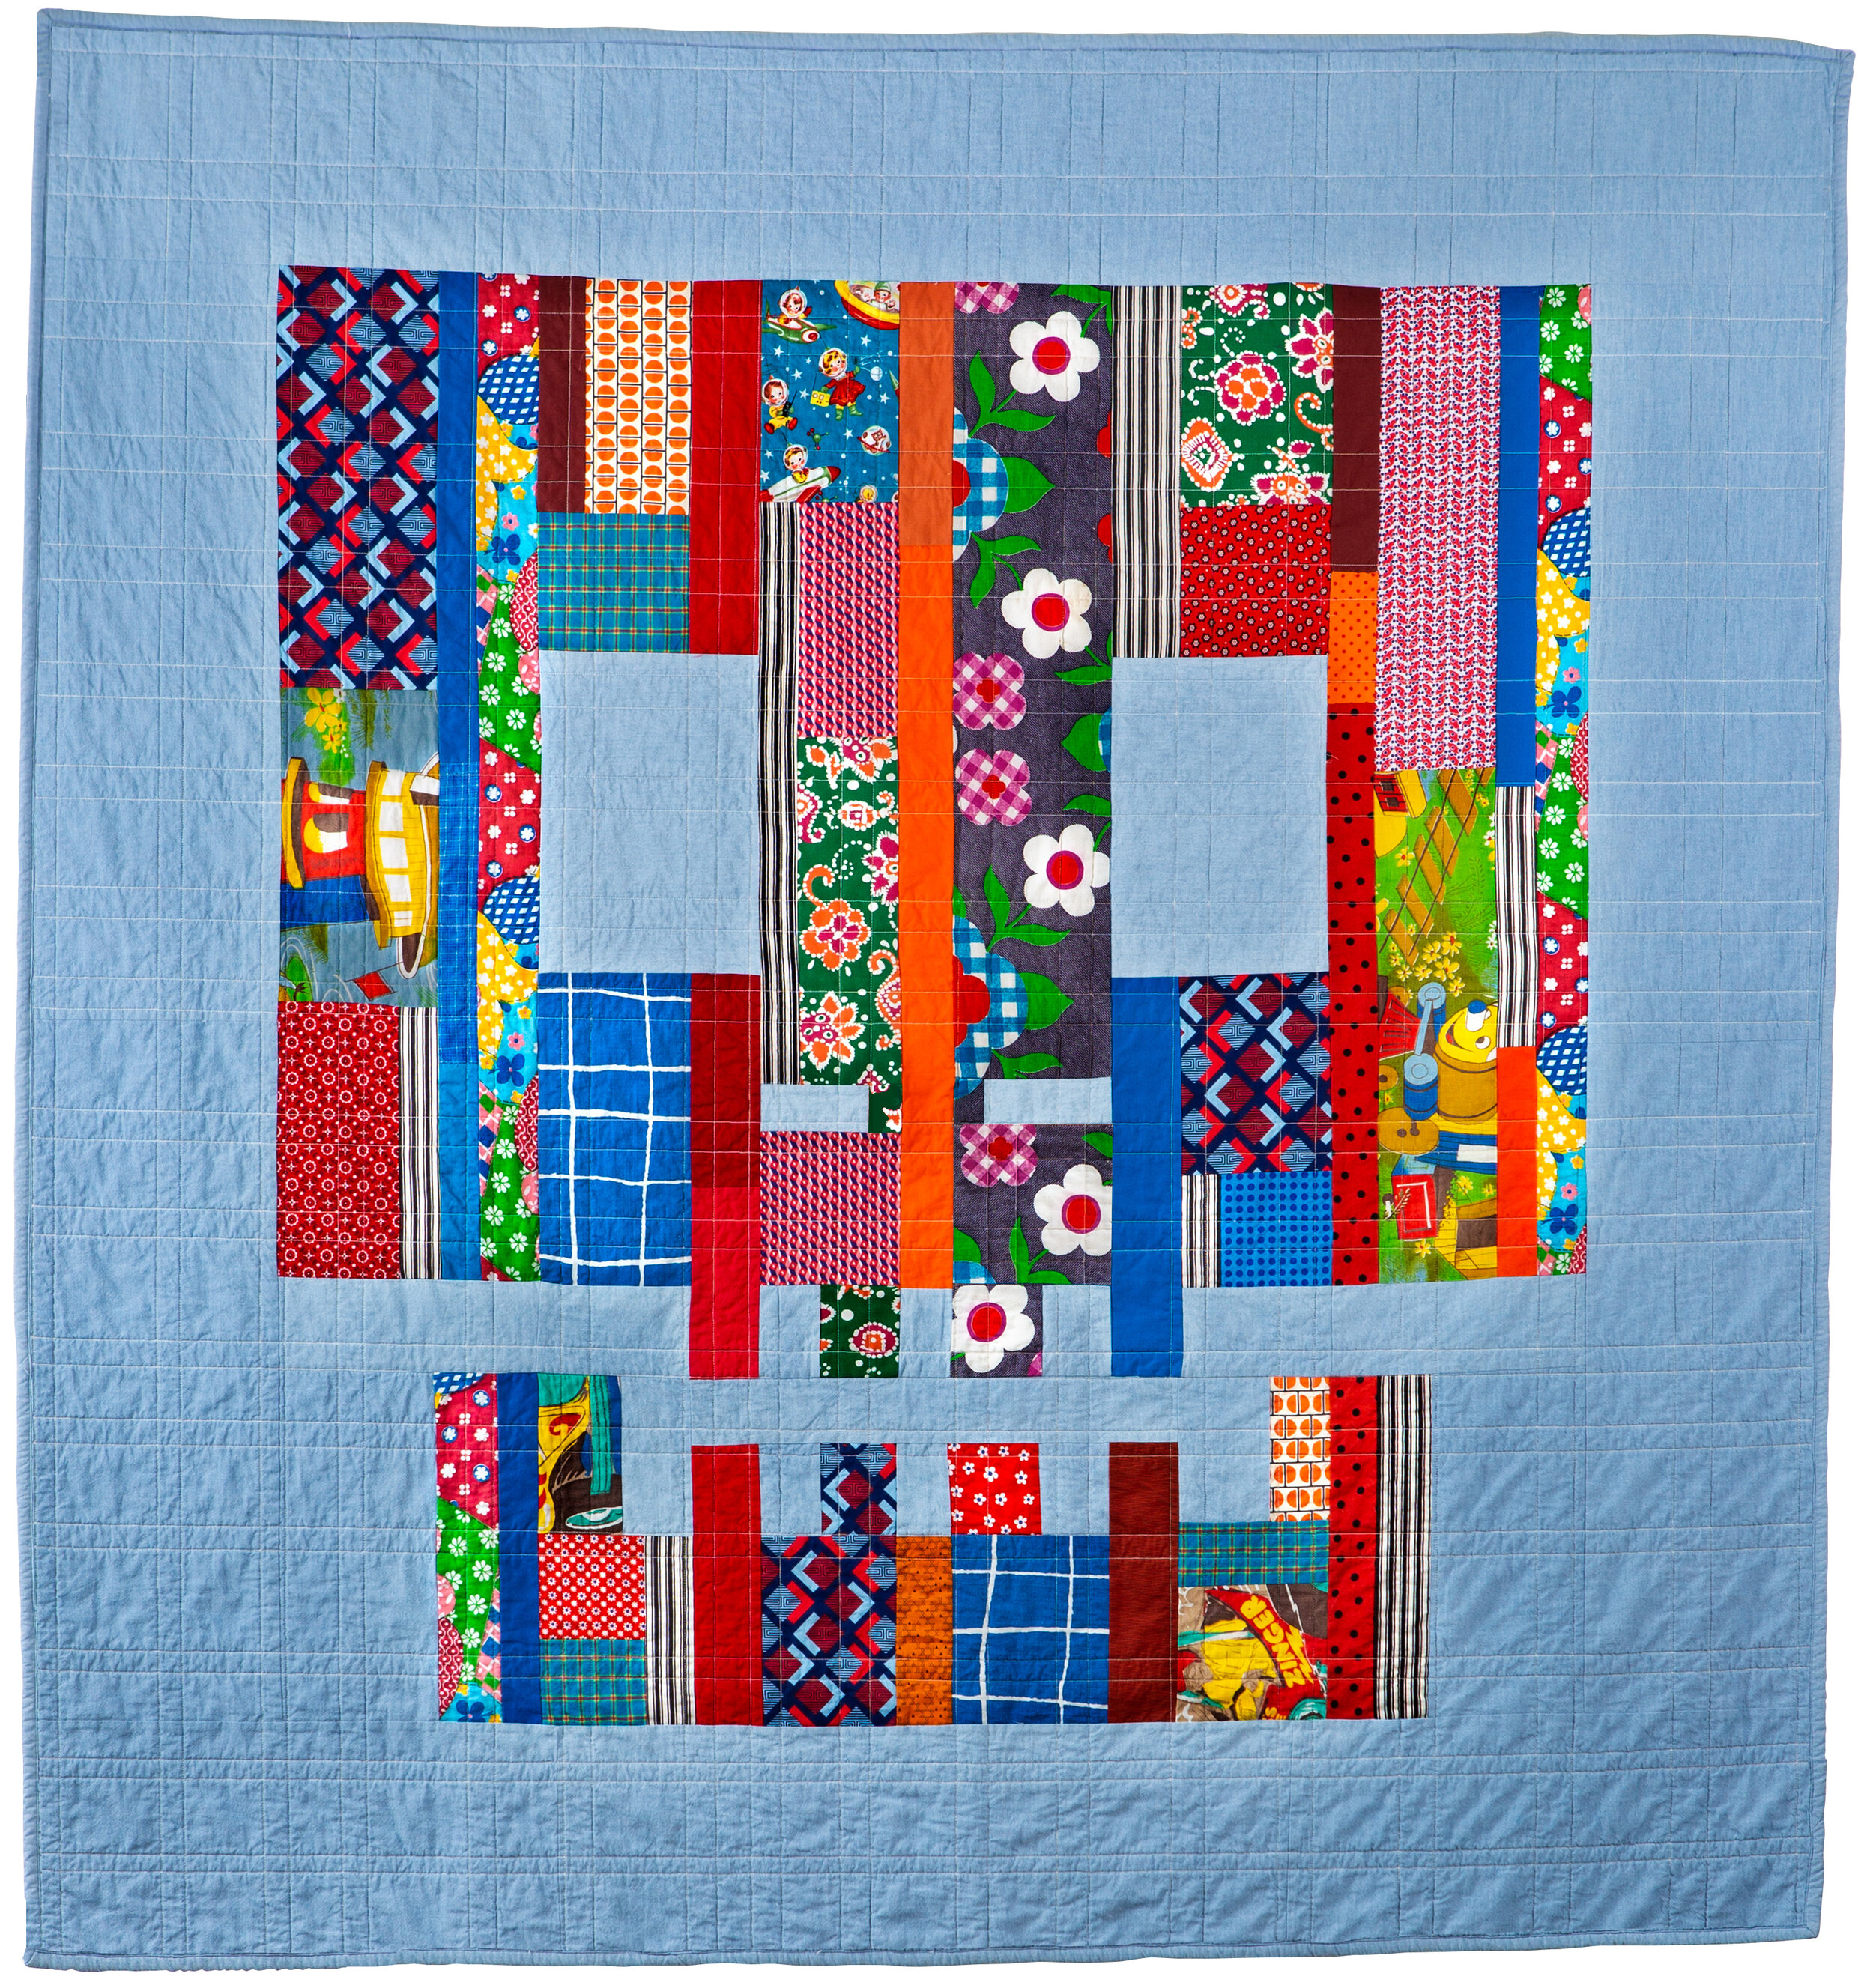 Ruination_73x84-inches_by-Boo-Davis-Quiltsryche2.jpg